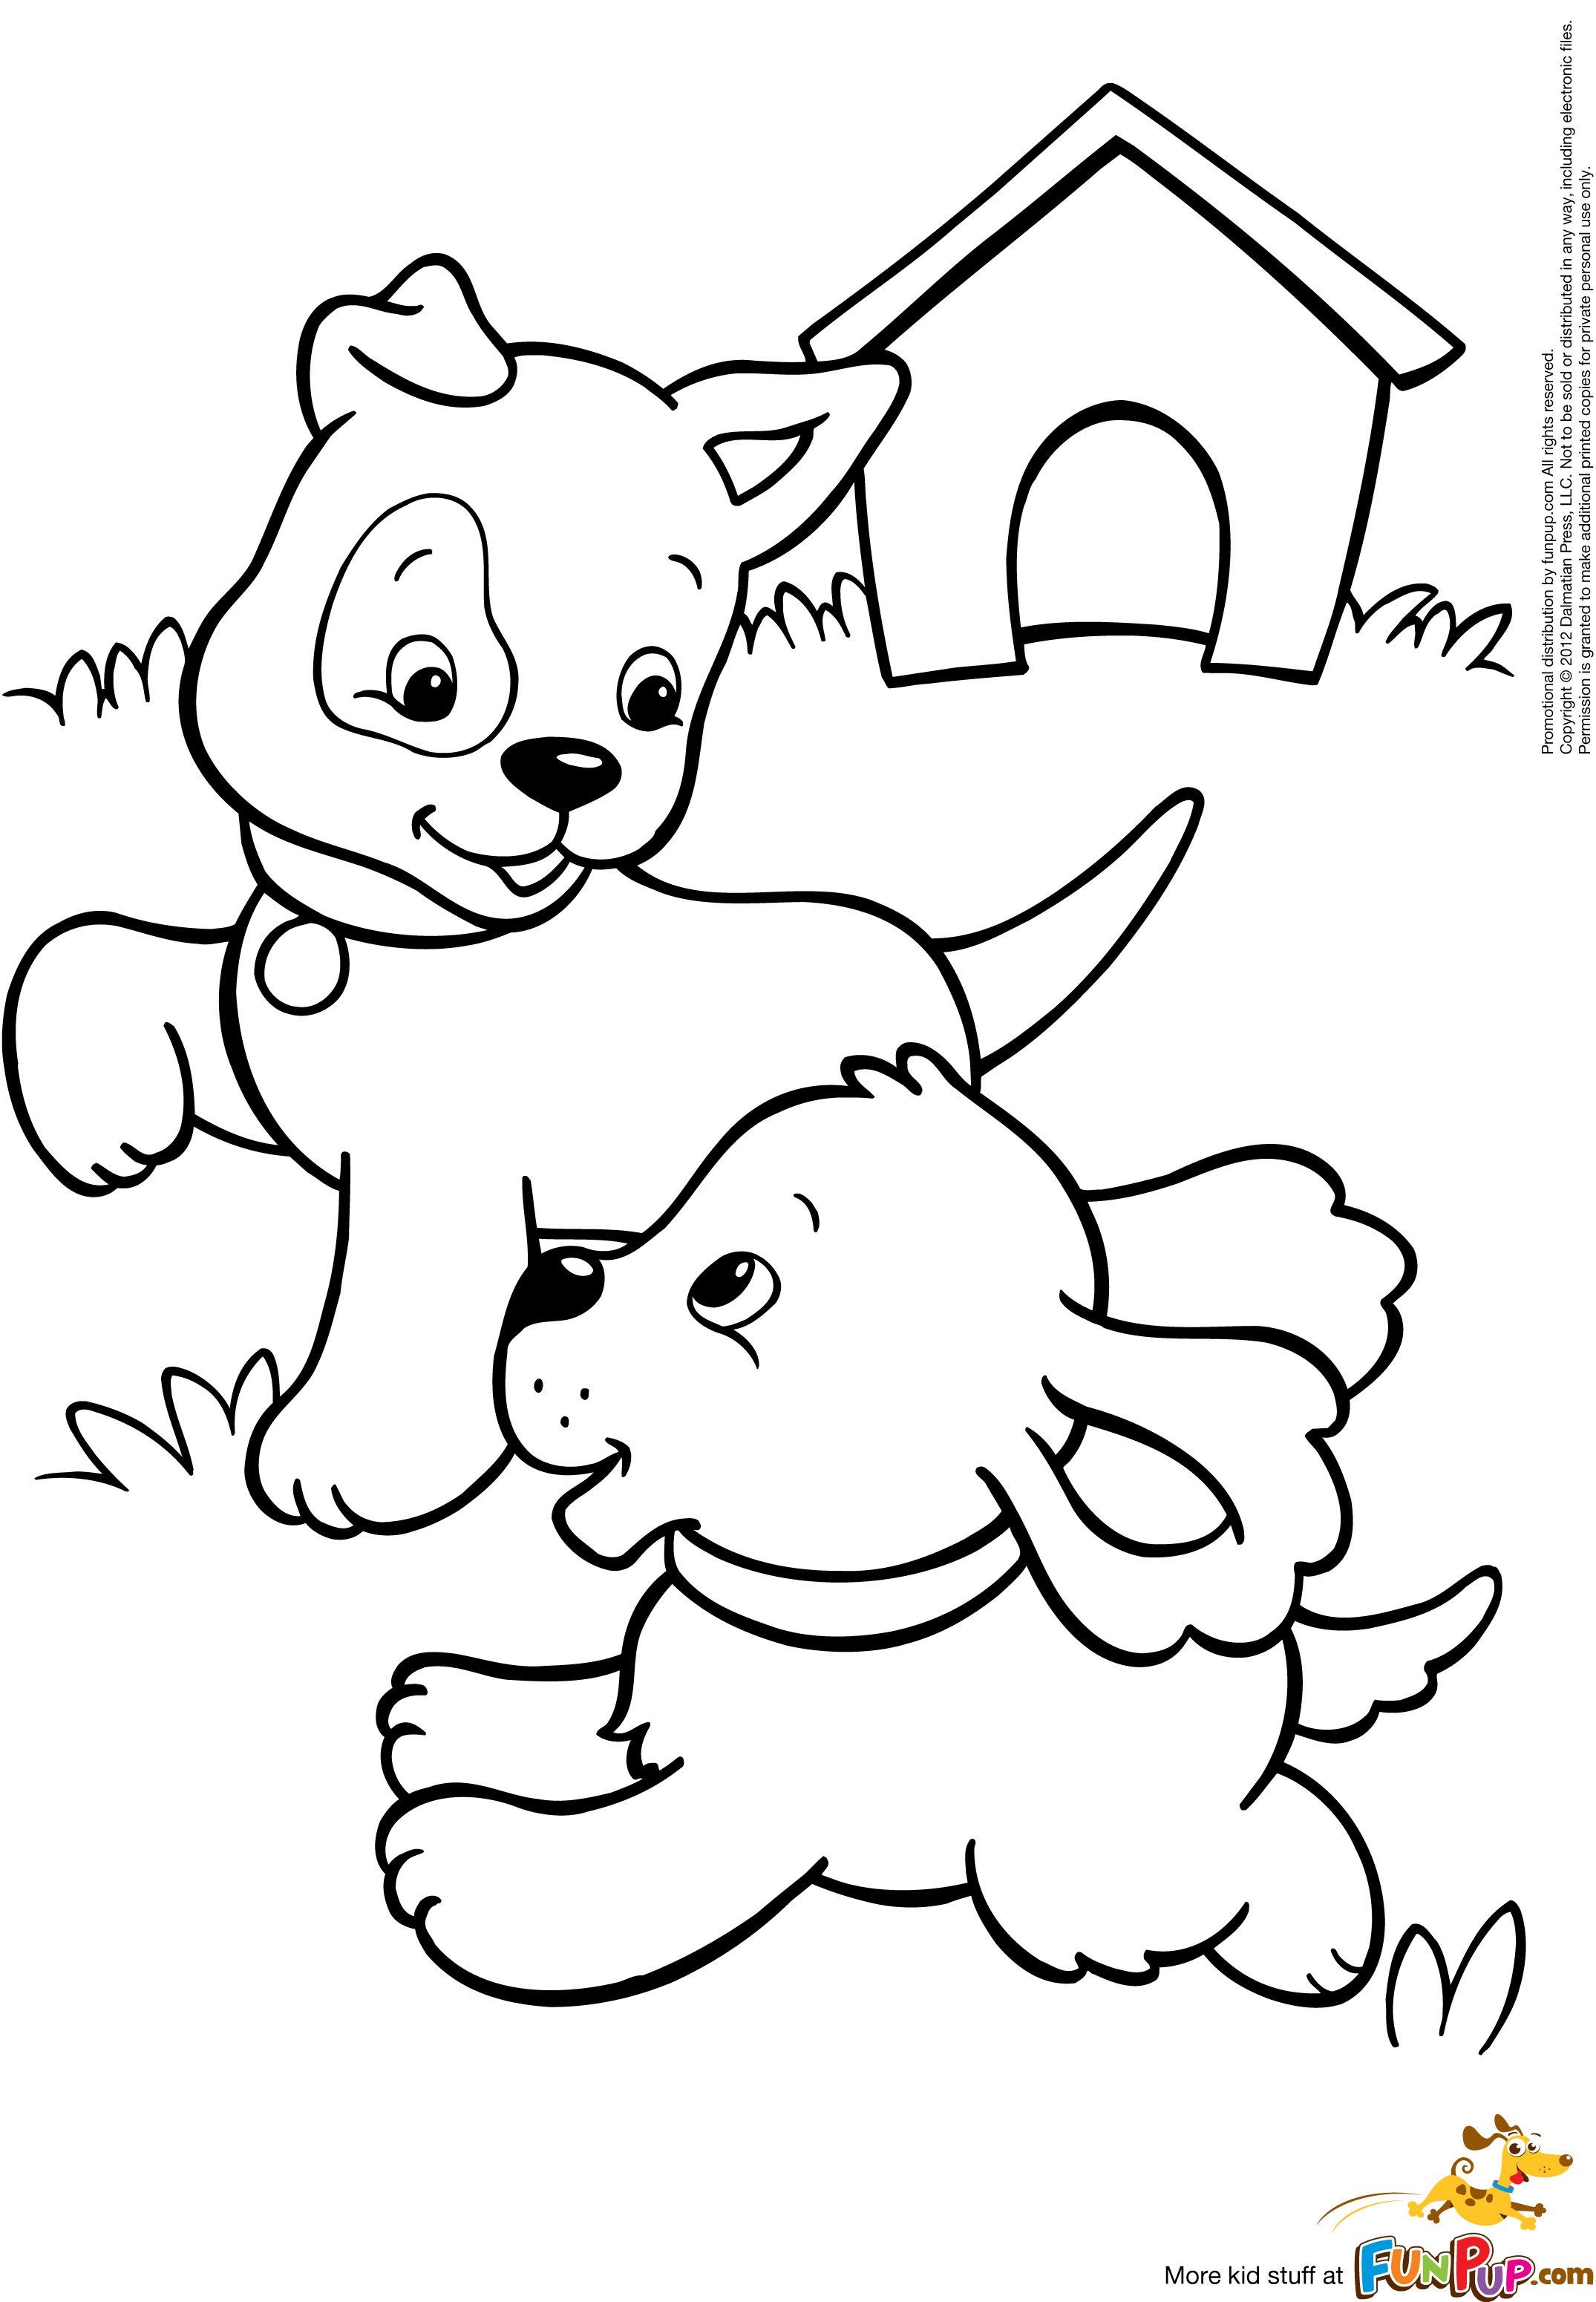 Adult Best Puppy Color Page Gallery Images top puppy coloring pages labrador with puppies images